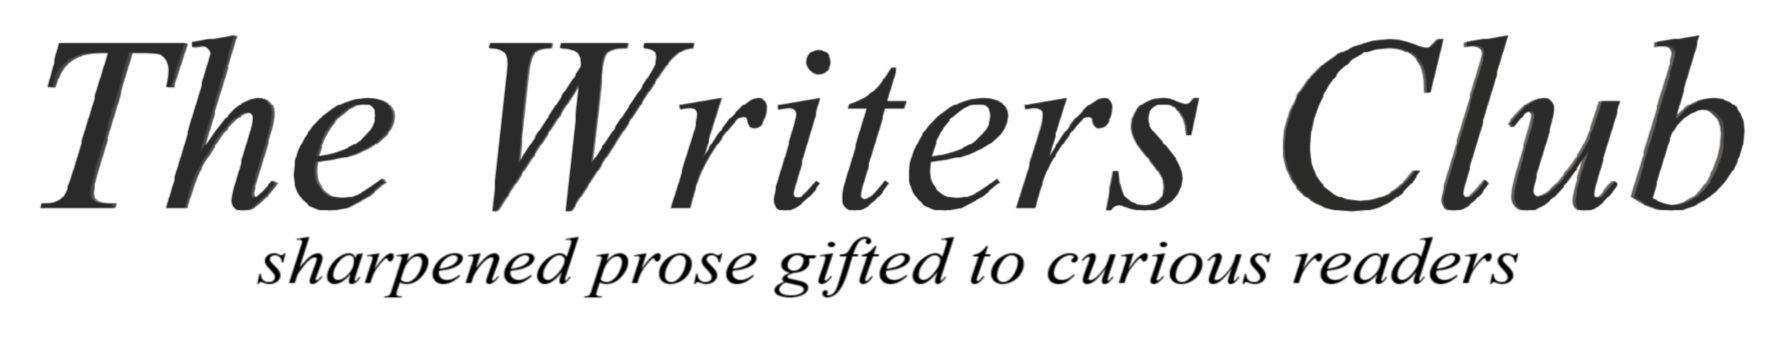 The Writers Club, writing, authors, writers, writer, write, prose, literature, poetry, flash fiction, short story, novel